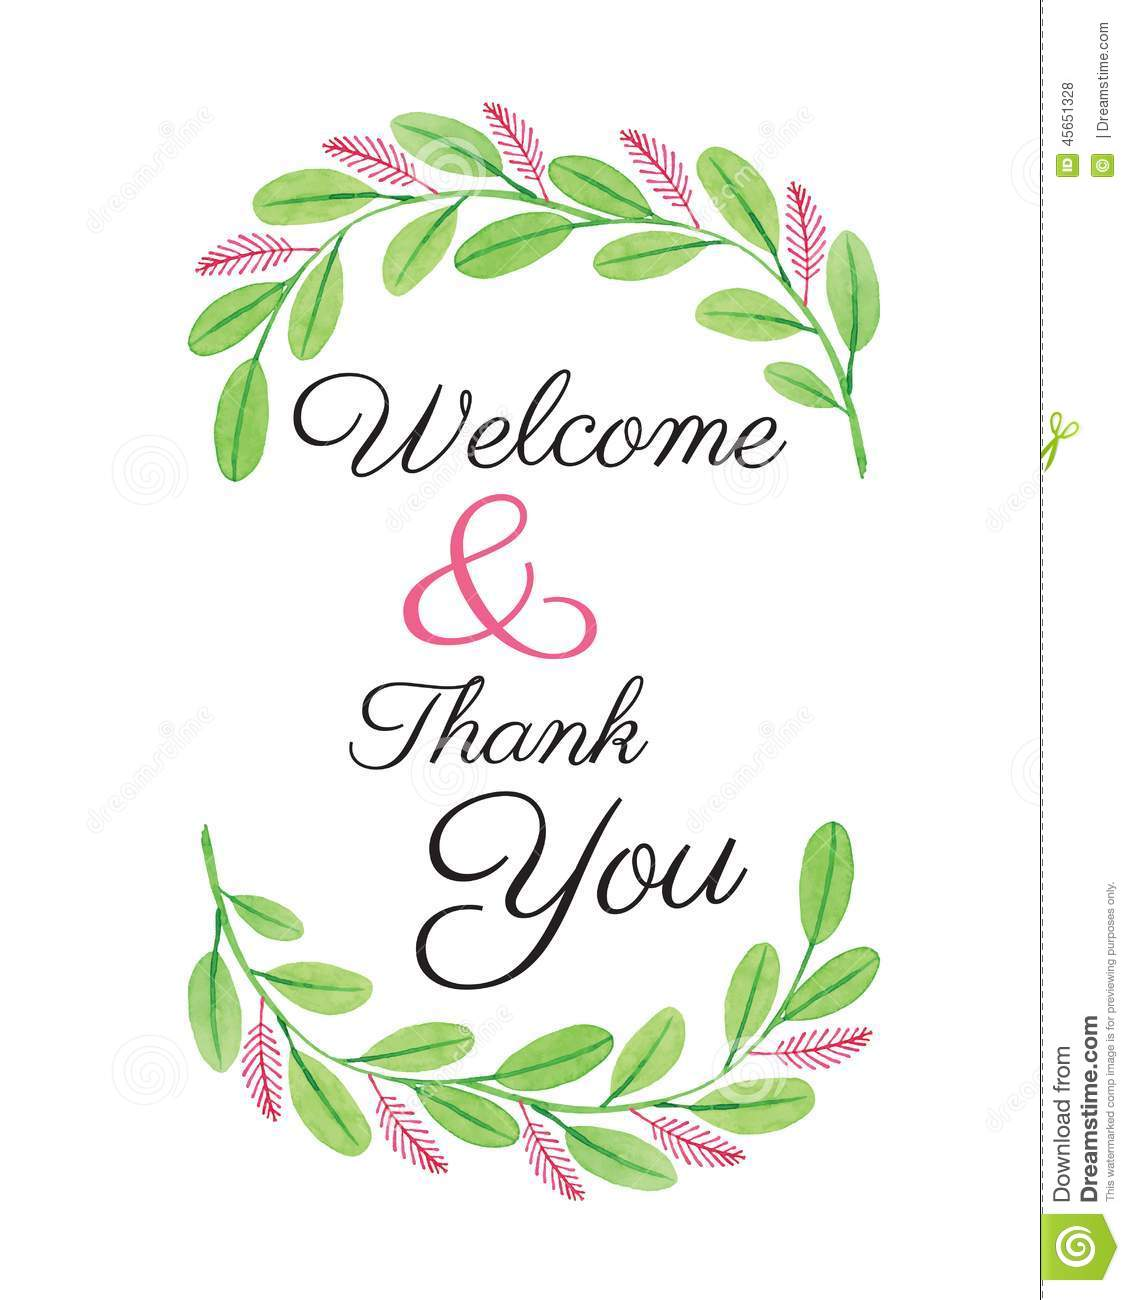 Welcome Card - Flower Design Watercolor Vector Stock ...